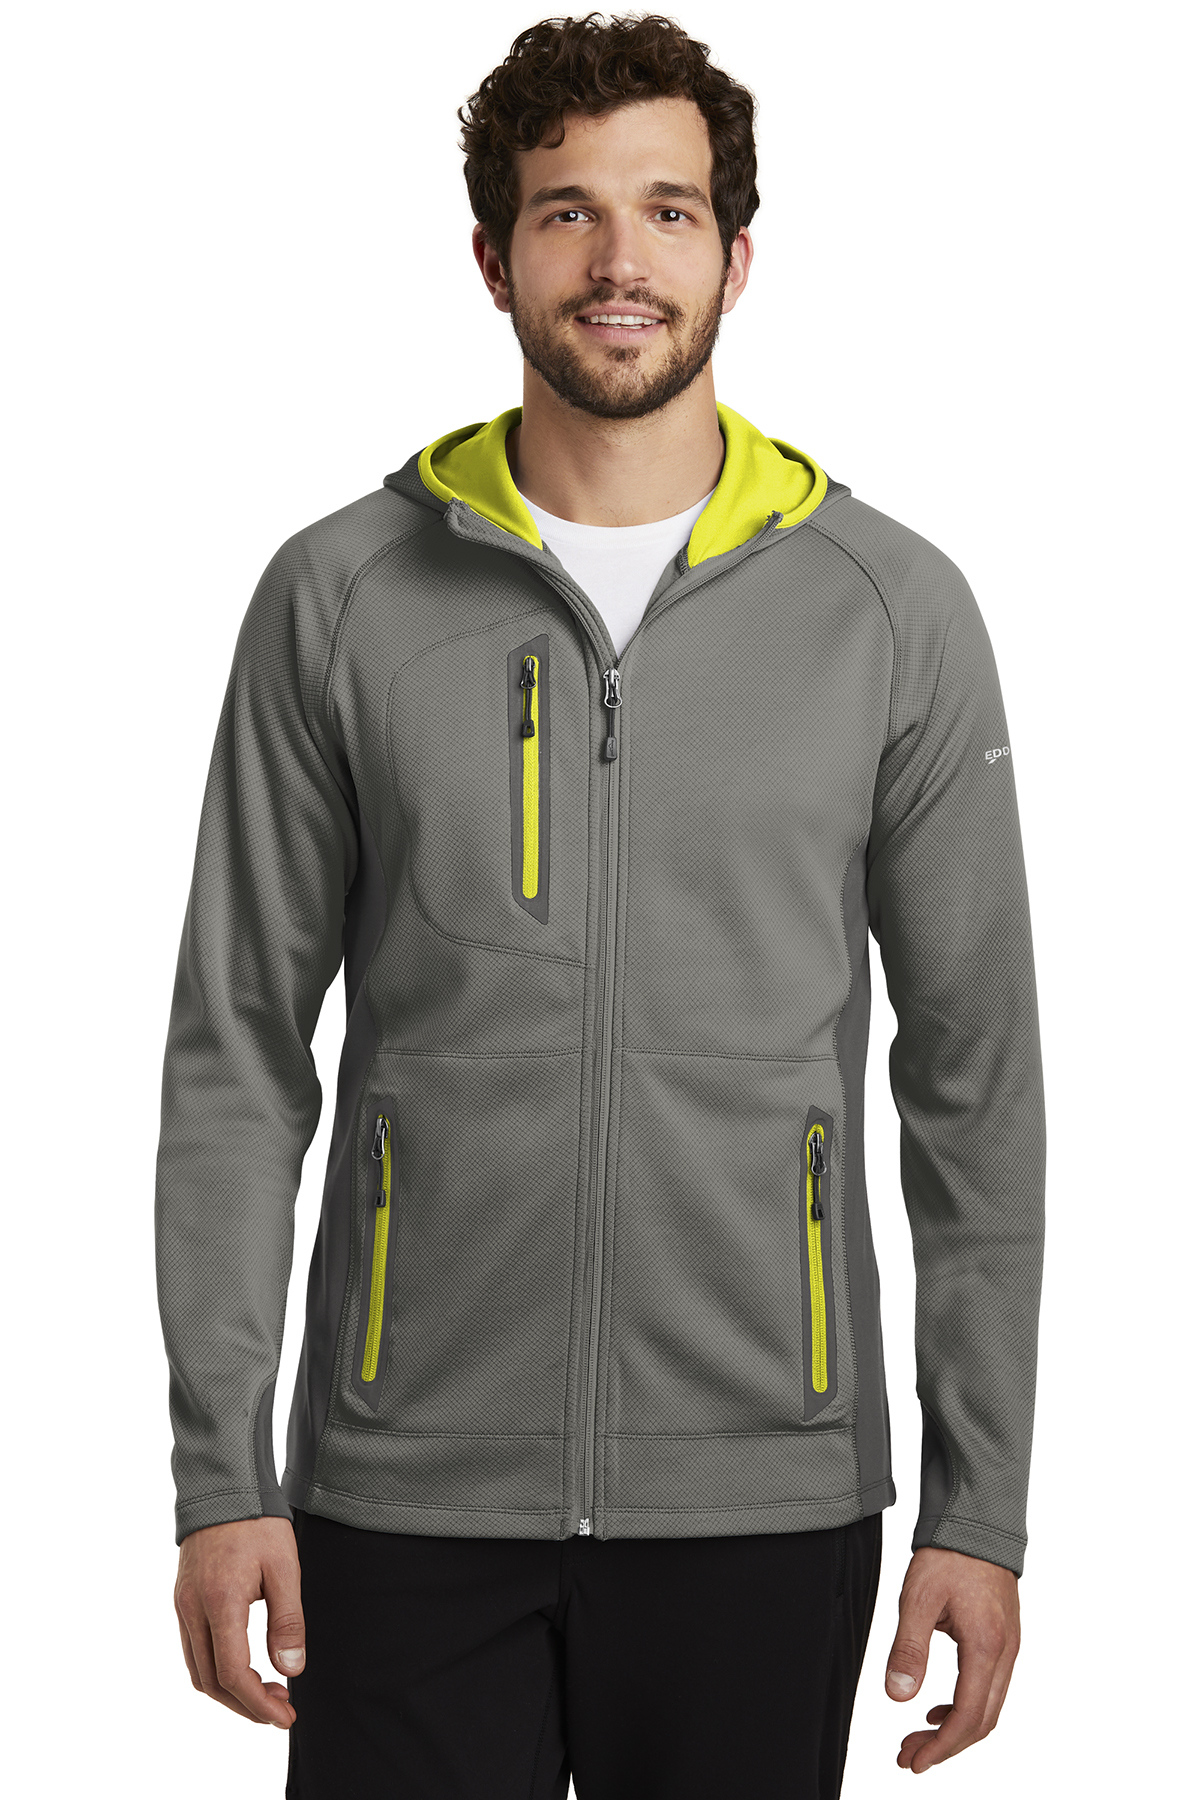 Eddie Bauer EB244 - Men's Sport Hooded Full-Zip Fleece Jacket